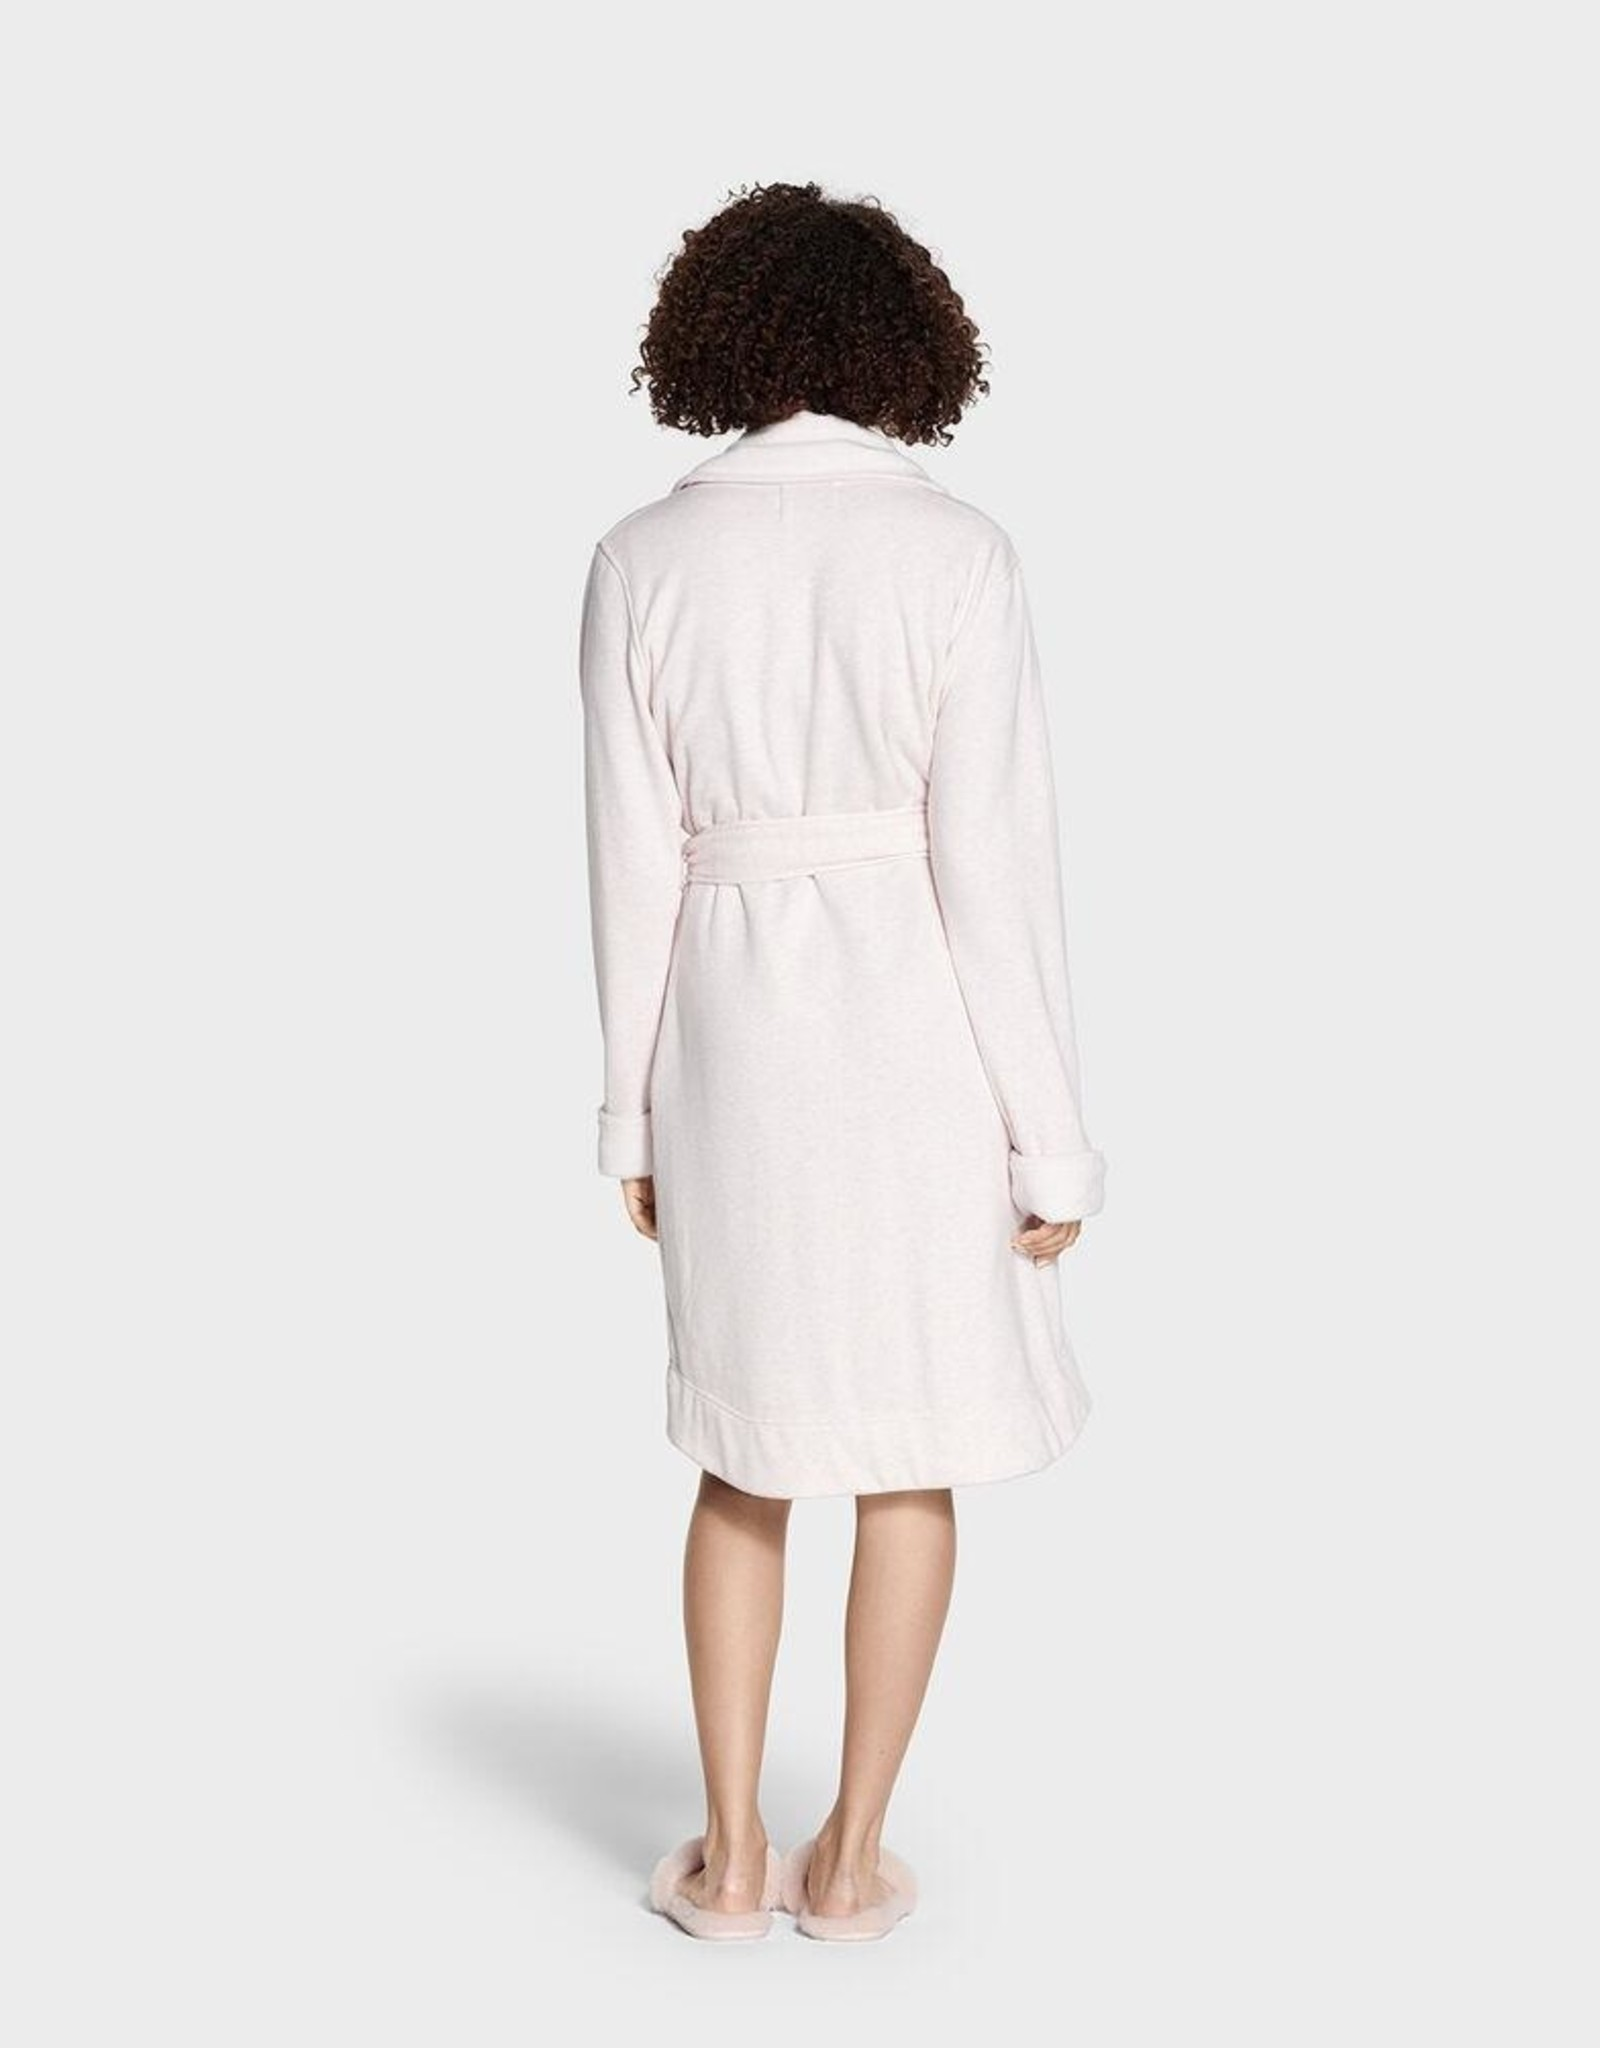 UGG - Woman's Blanche Seal Pink Heather Lightweight Robe